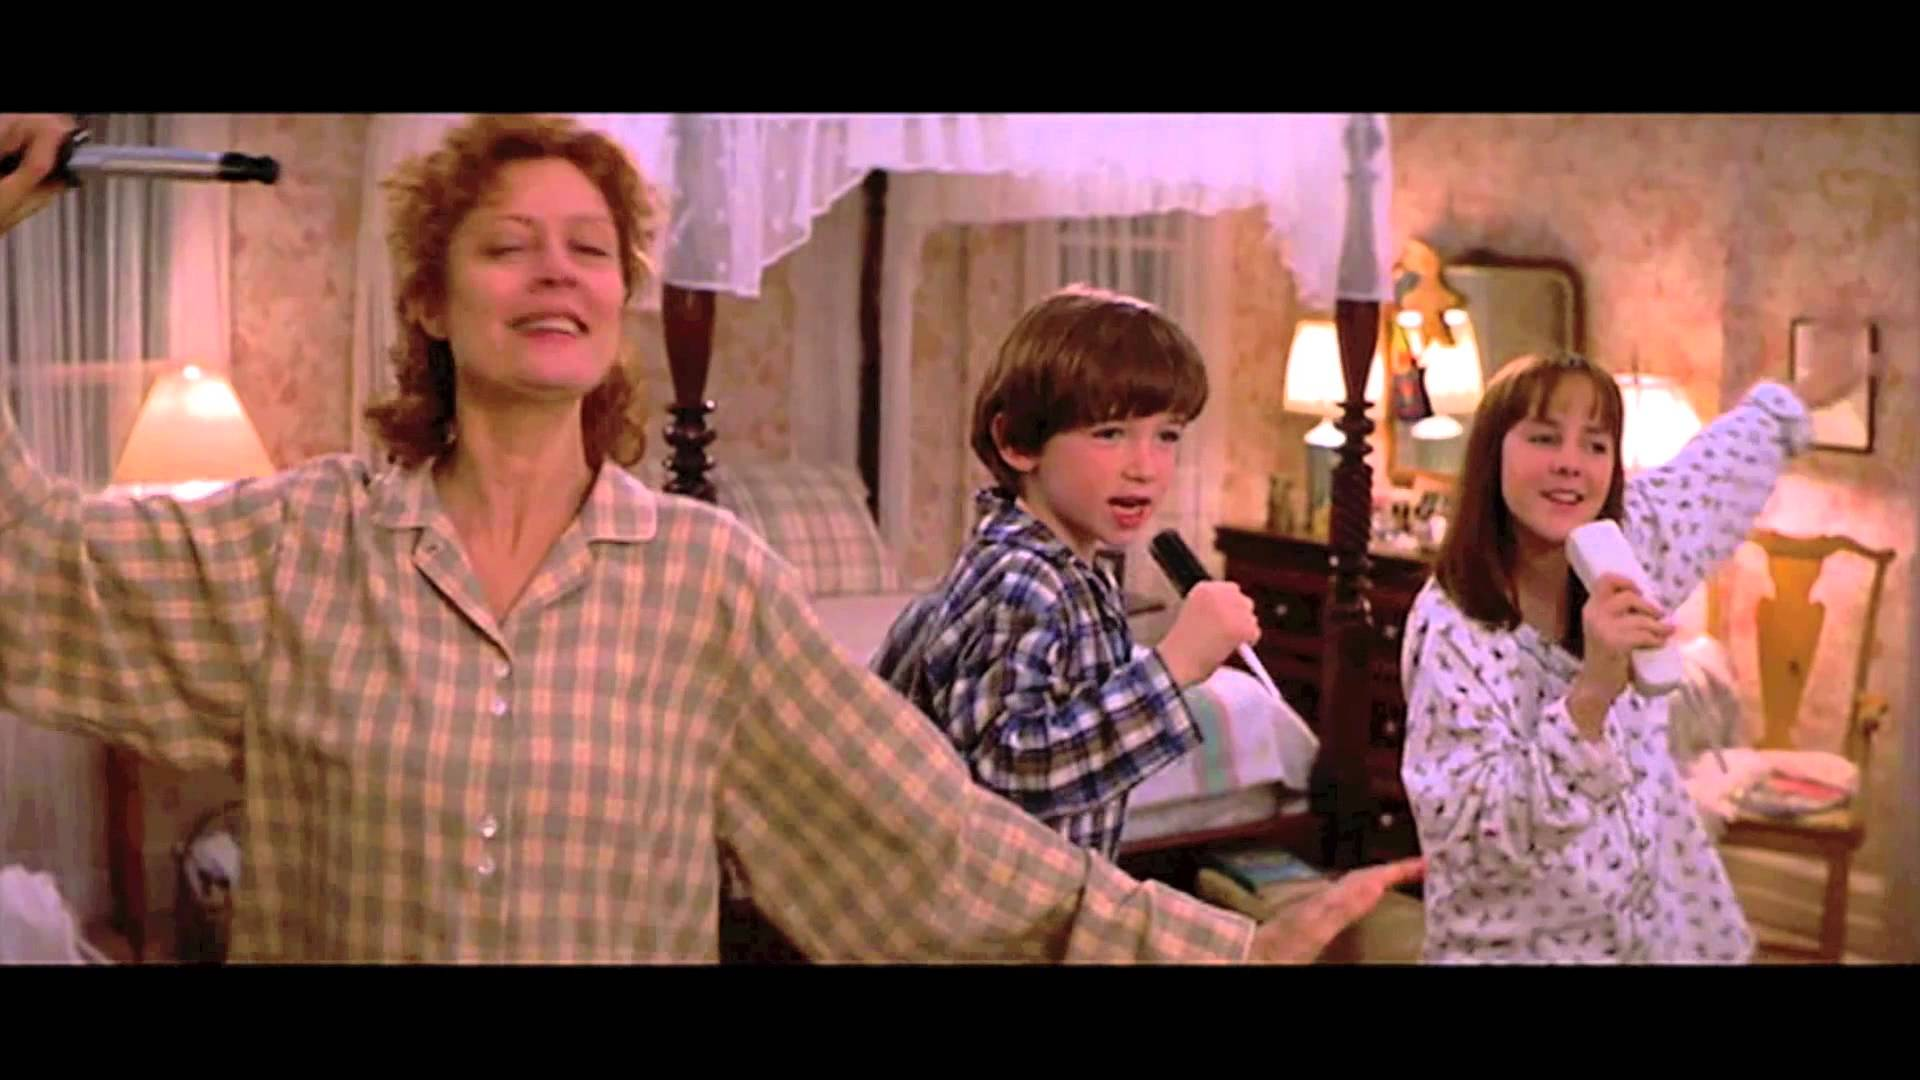 Stepmom (1998) Movie Stepmom